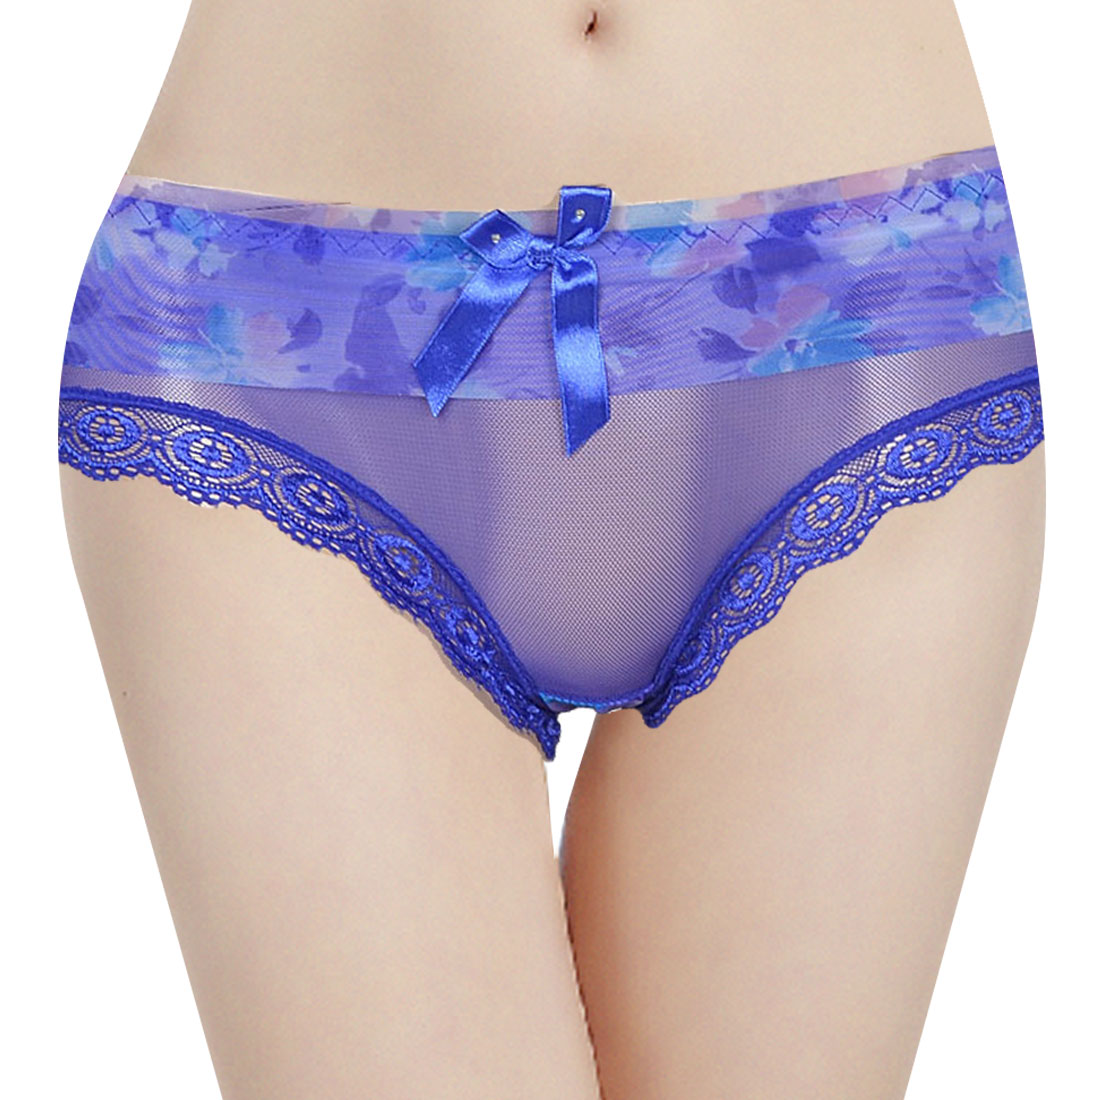 Lady Blue Bowknot Detail Stretch Ruffled Waist Underwear Lingerie Briefs XS